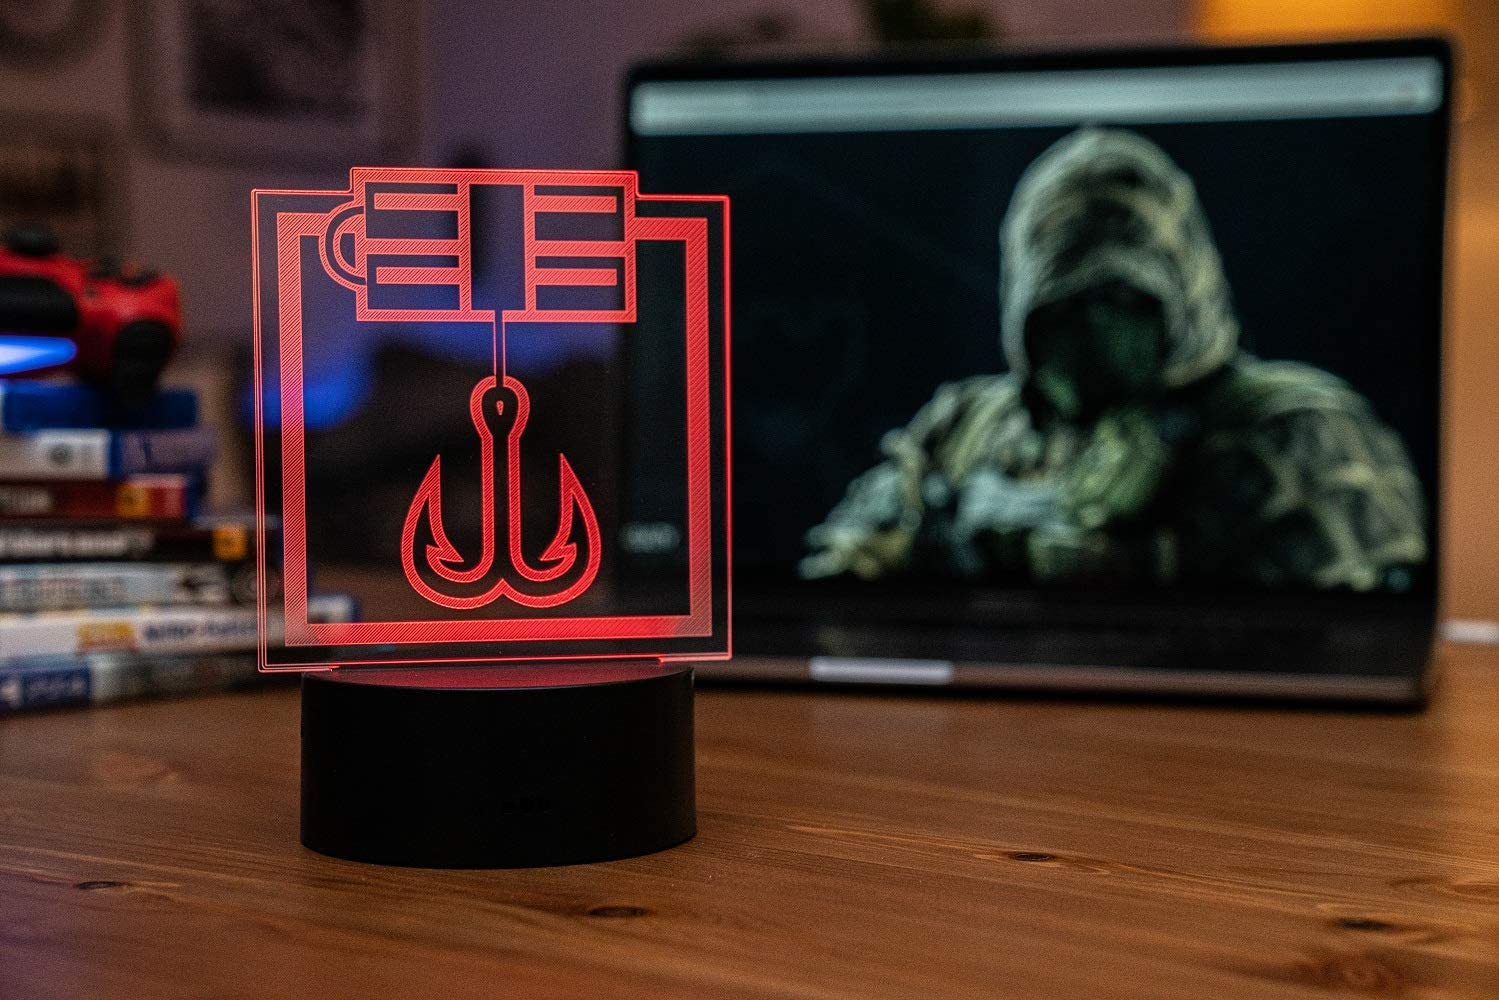 Six Siege LED Lamp - KapKan Operator - Rainbow Six Siege Decor for The Bedroom or Gaming Studio - Color Changing LED Nightlight Great for Cosplay Photoshoots with Any R6 Character